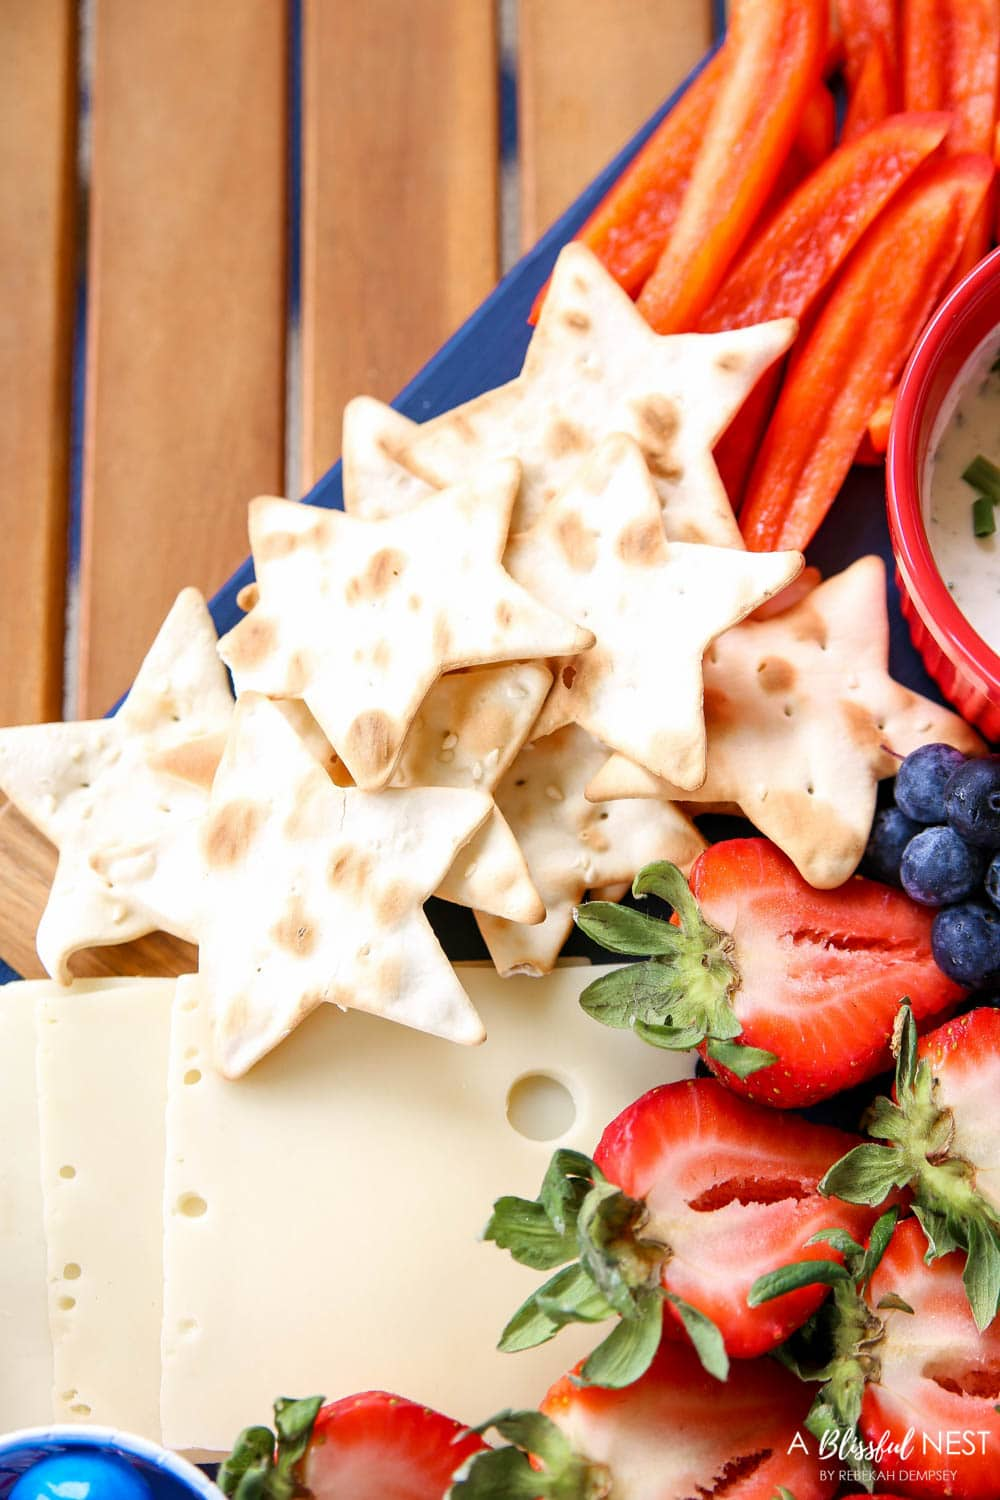 A beautiful patriotic charcuterie board with something for everyone. #ABlissfulNest #charcuterieboard #4thofjuly